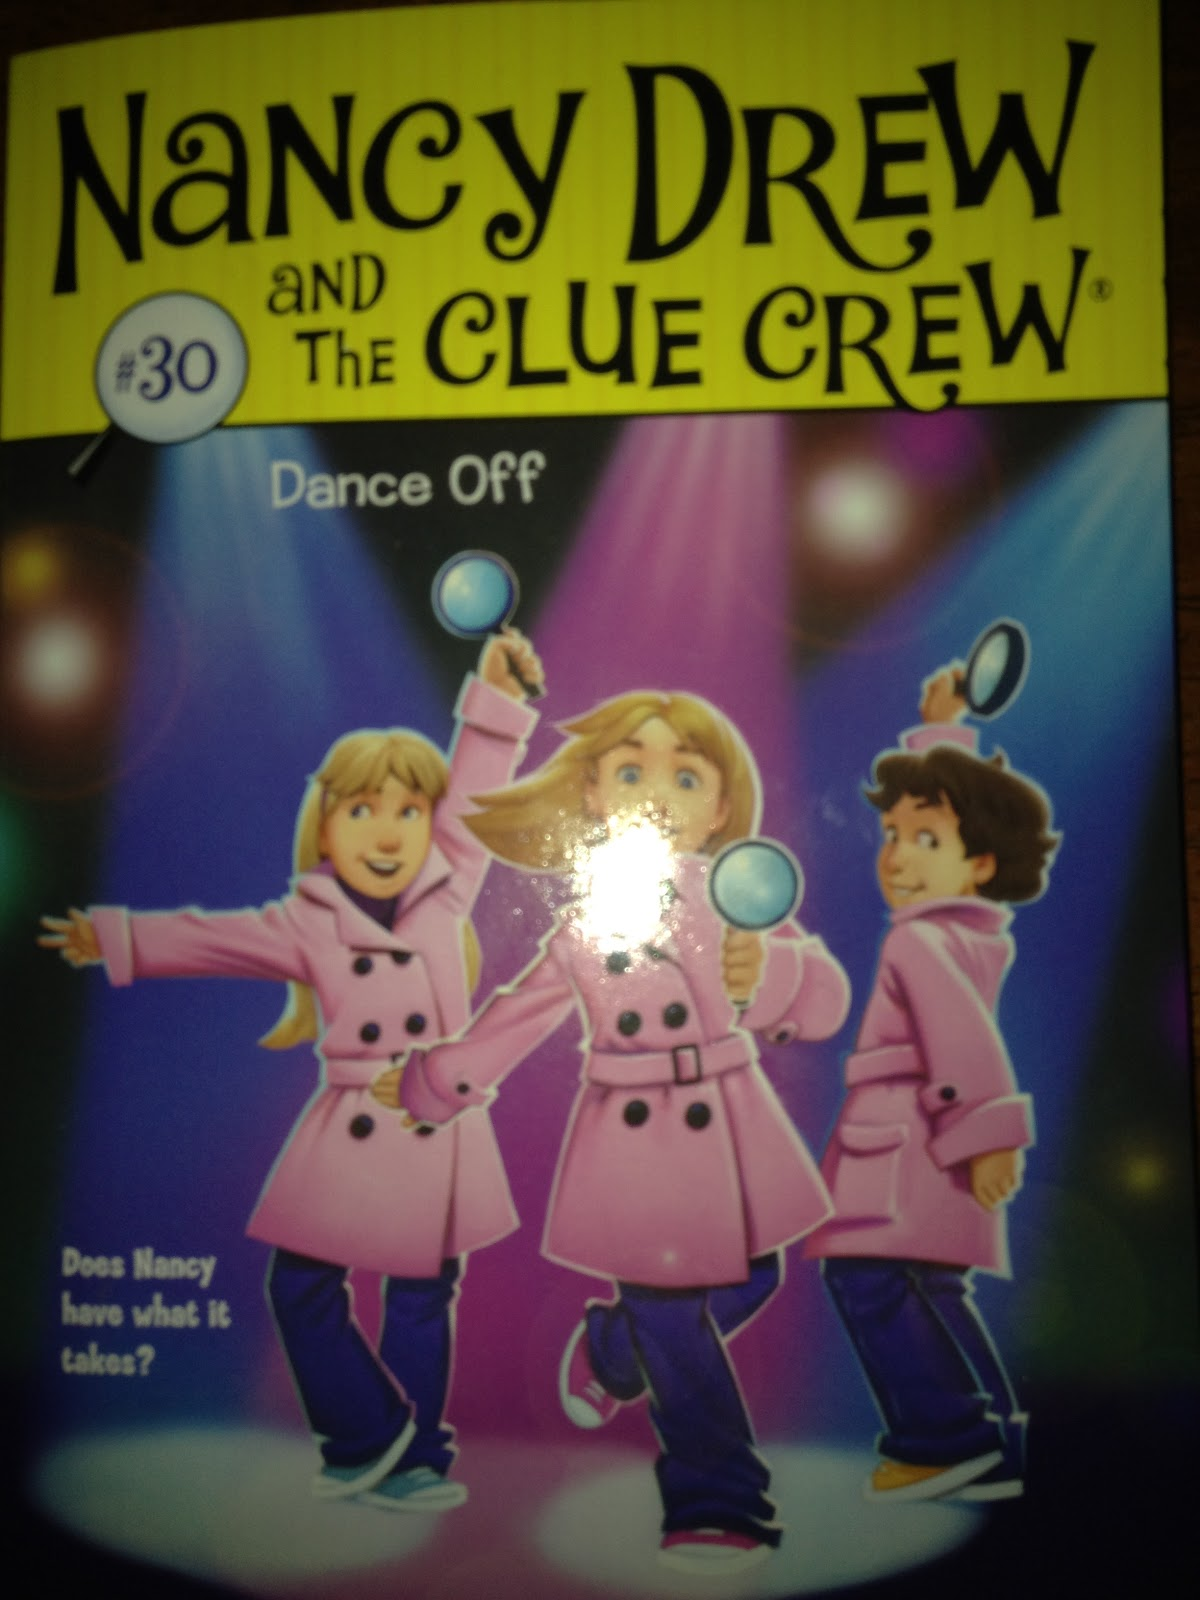 Dance Off (Nancy Drew and the Clue Crew Book 30)